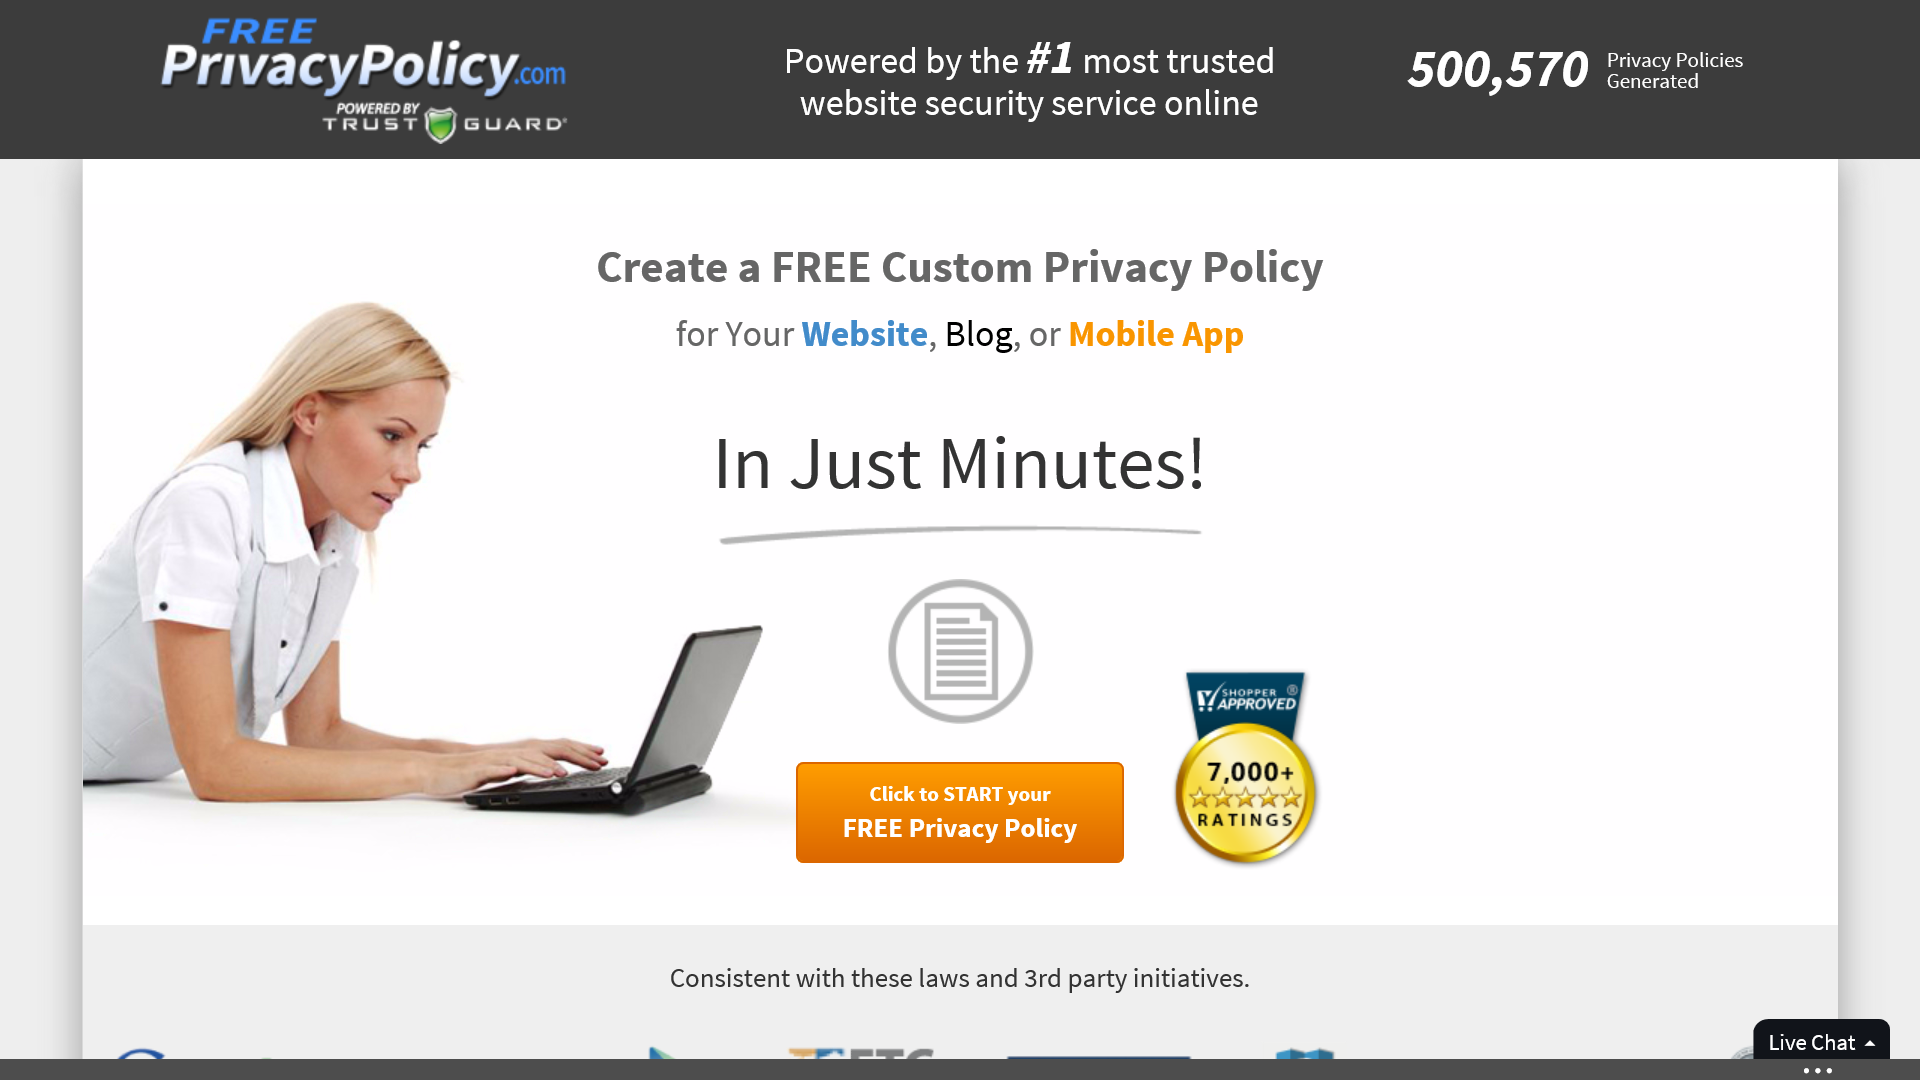 500,000 Privacy Policies Created With FreePrivacyPolicy.com Highlights Increasing Importance of Privacy Concerns